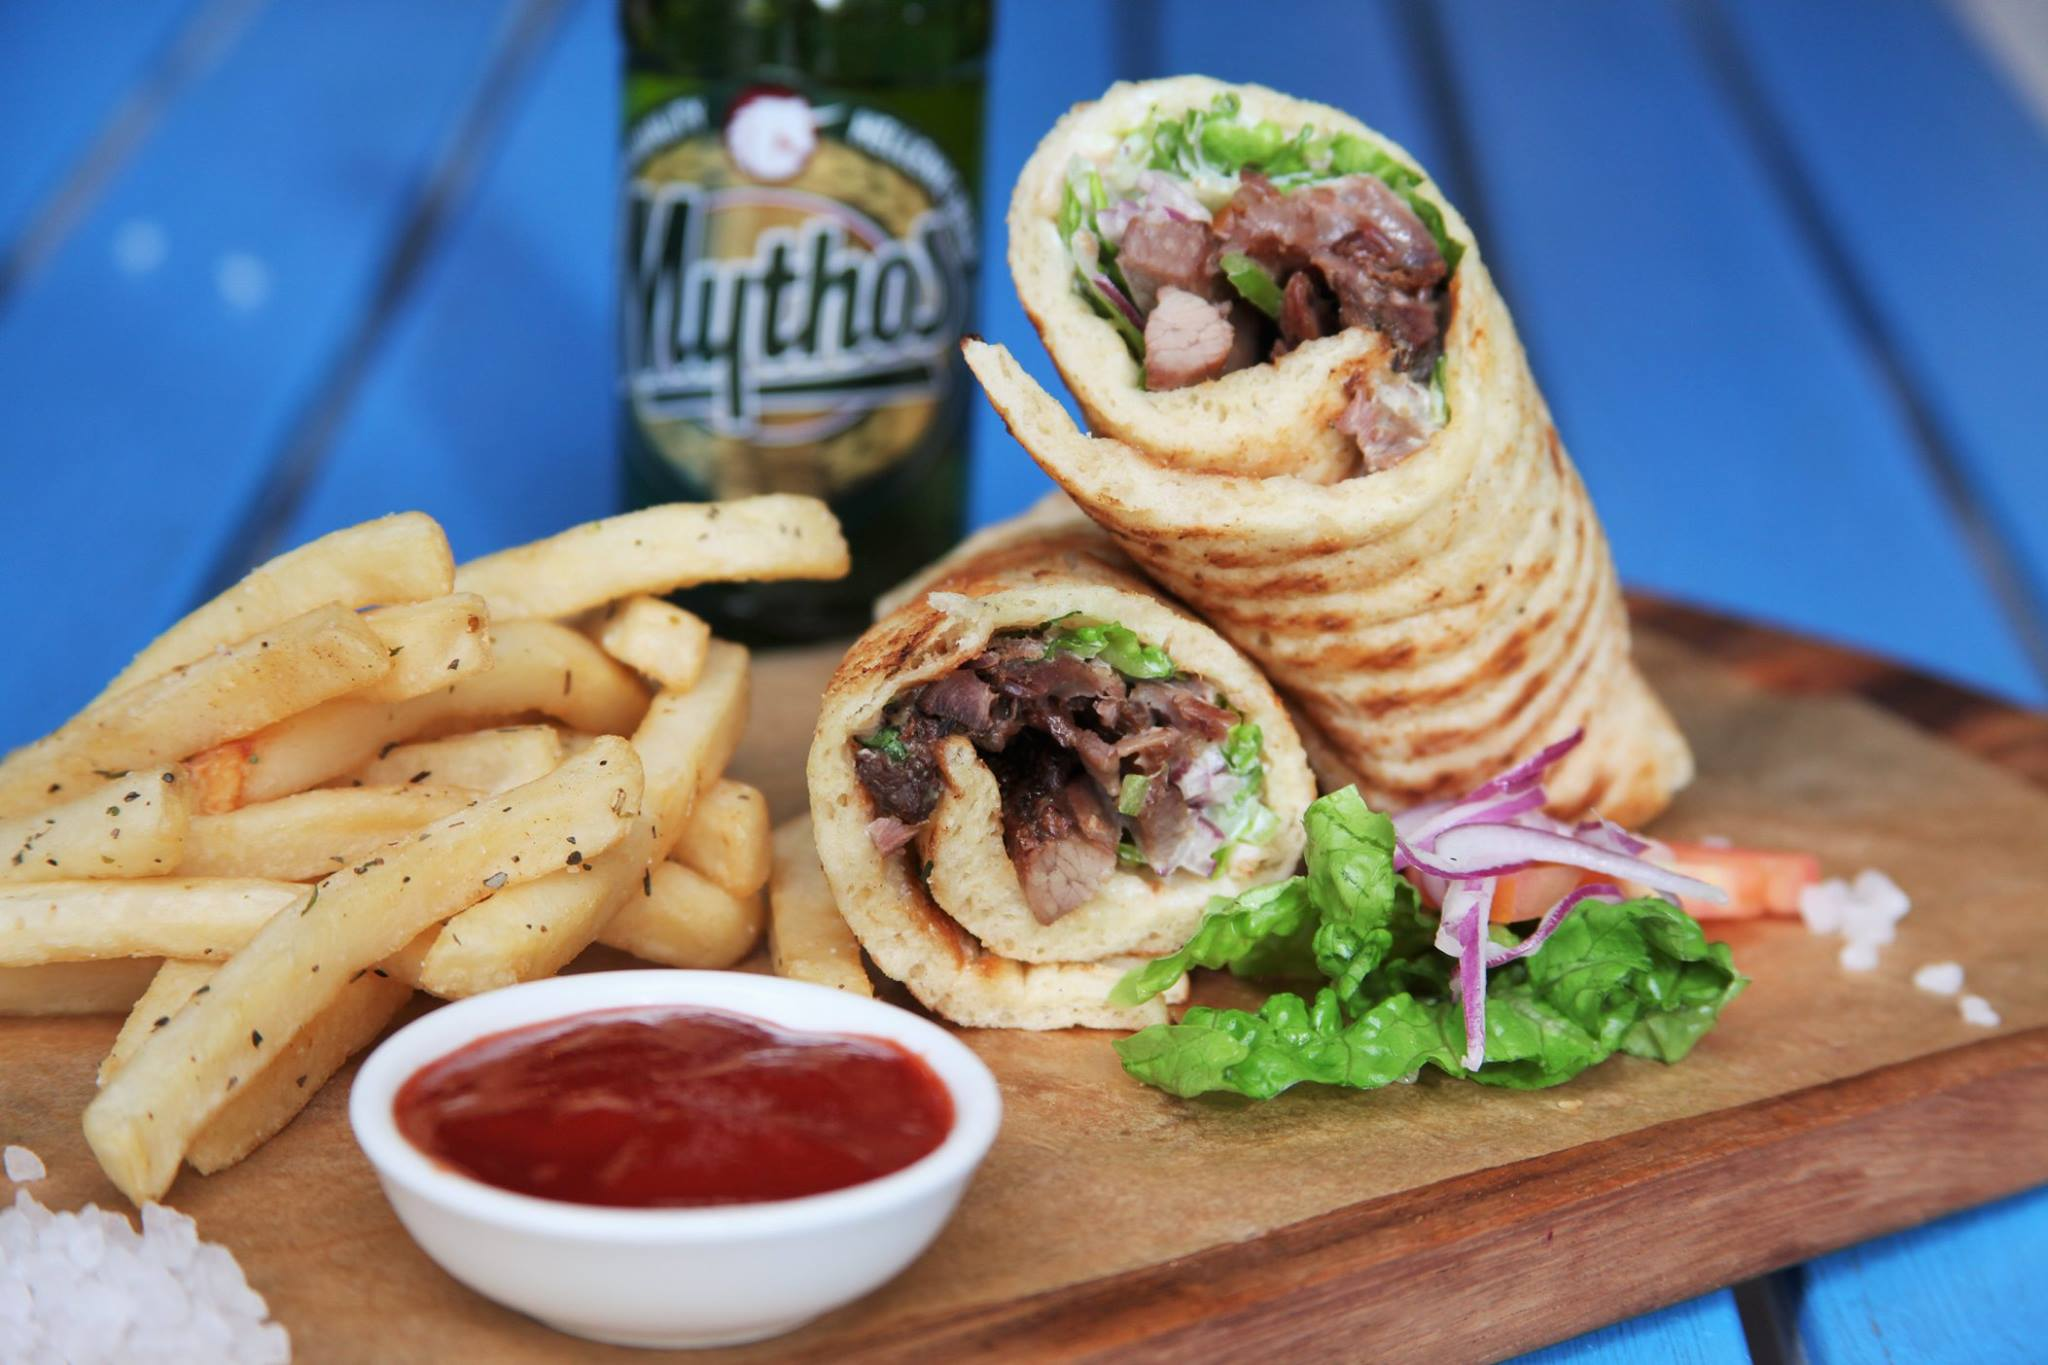 - Little Santorini a local favourite operated by Santorini Restaurant will be doing their popular Lamb Souvas. PLUS they'll be doing a few Vegetarian options!